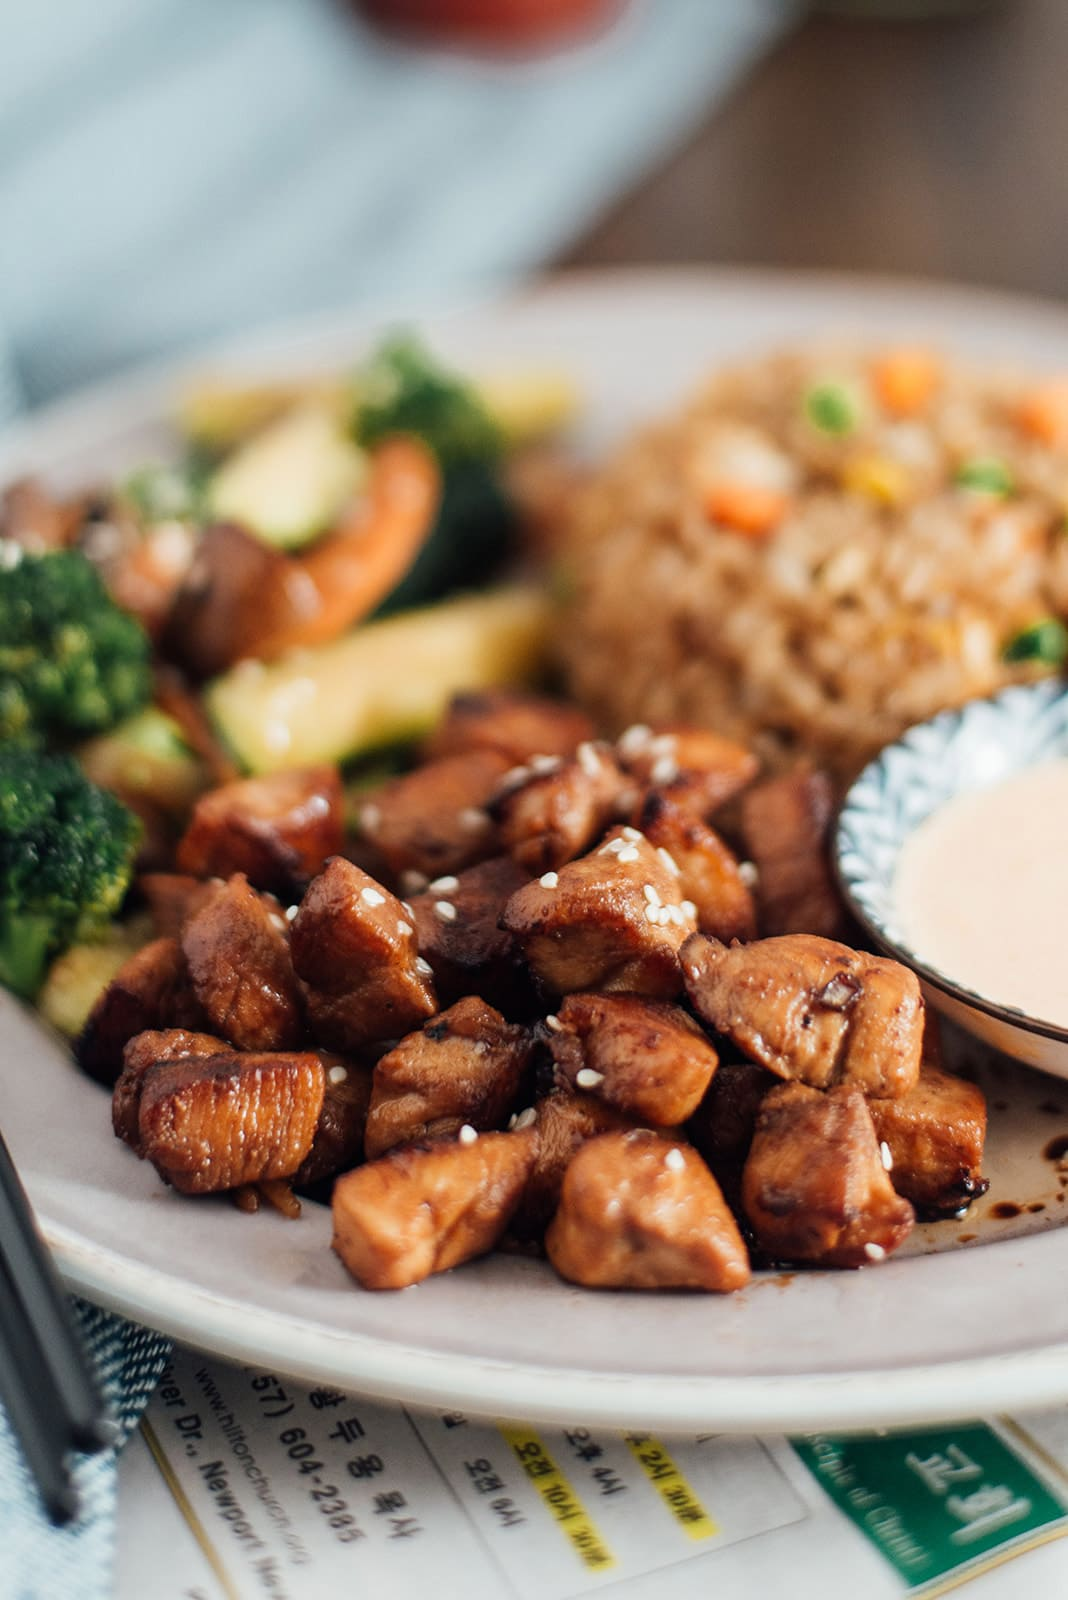 A close up shot of hibachi chicken with hibachi rice and vegetables in the background.